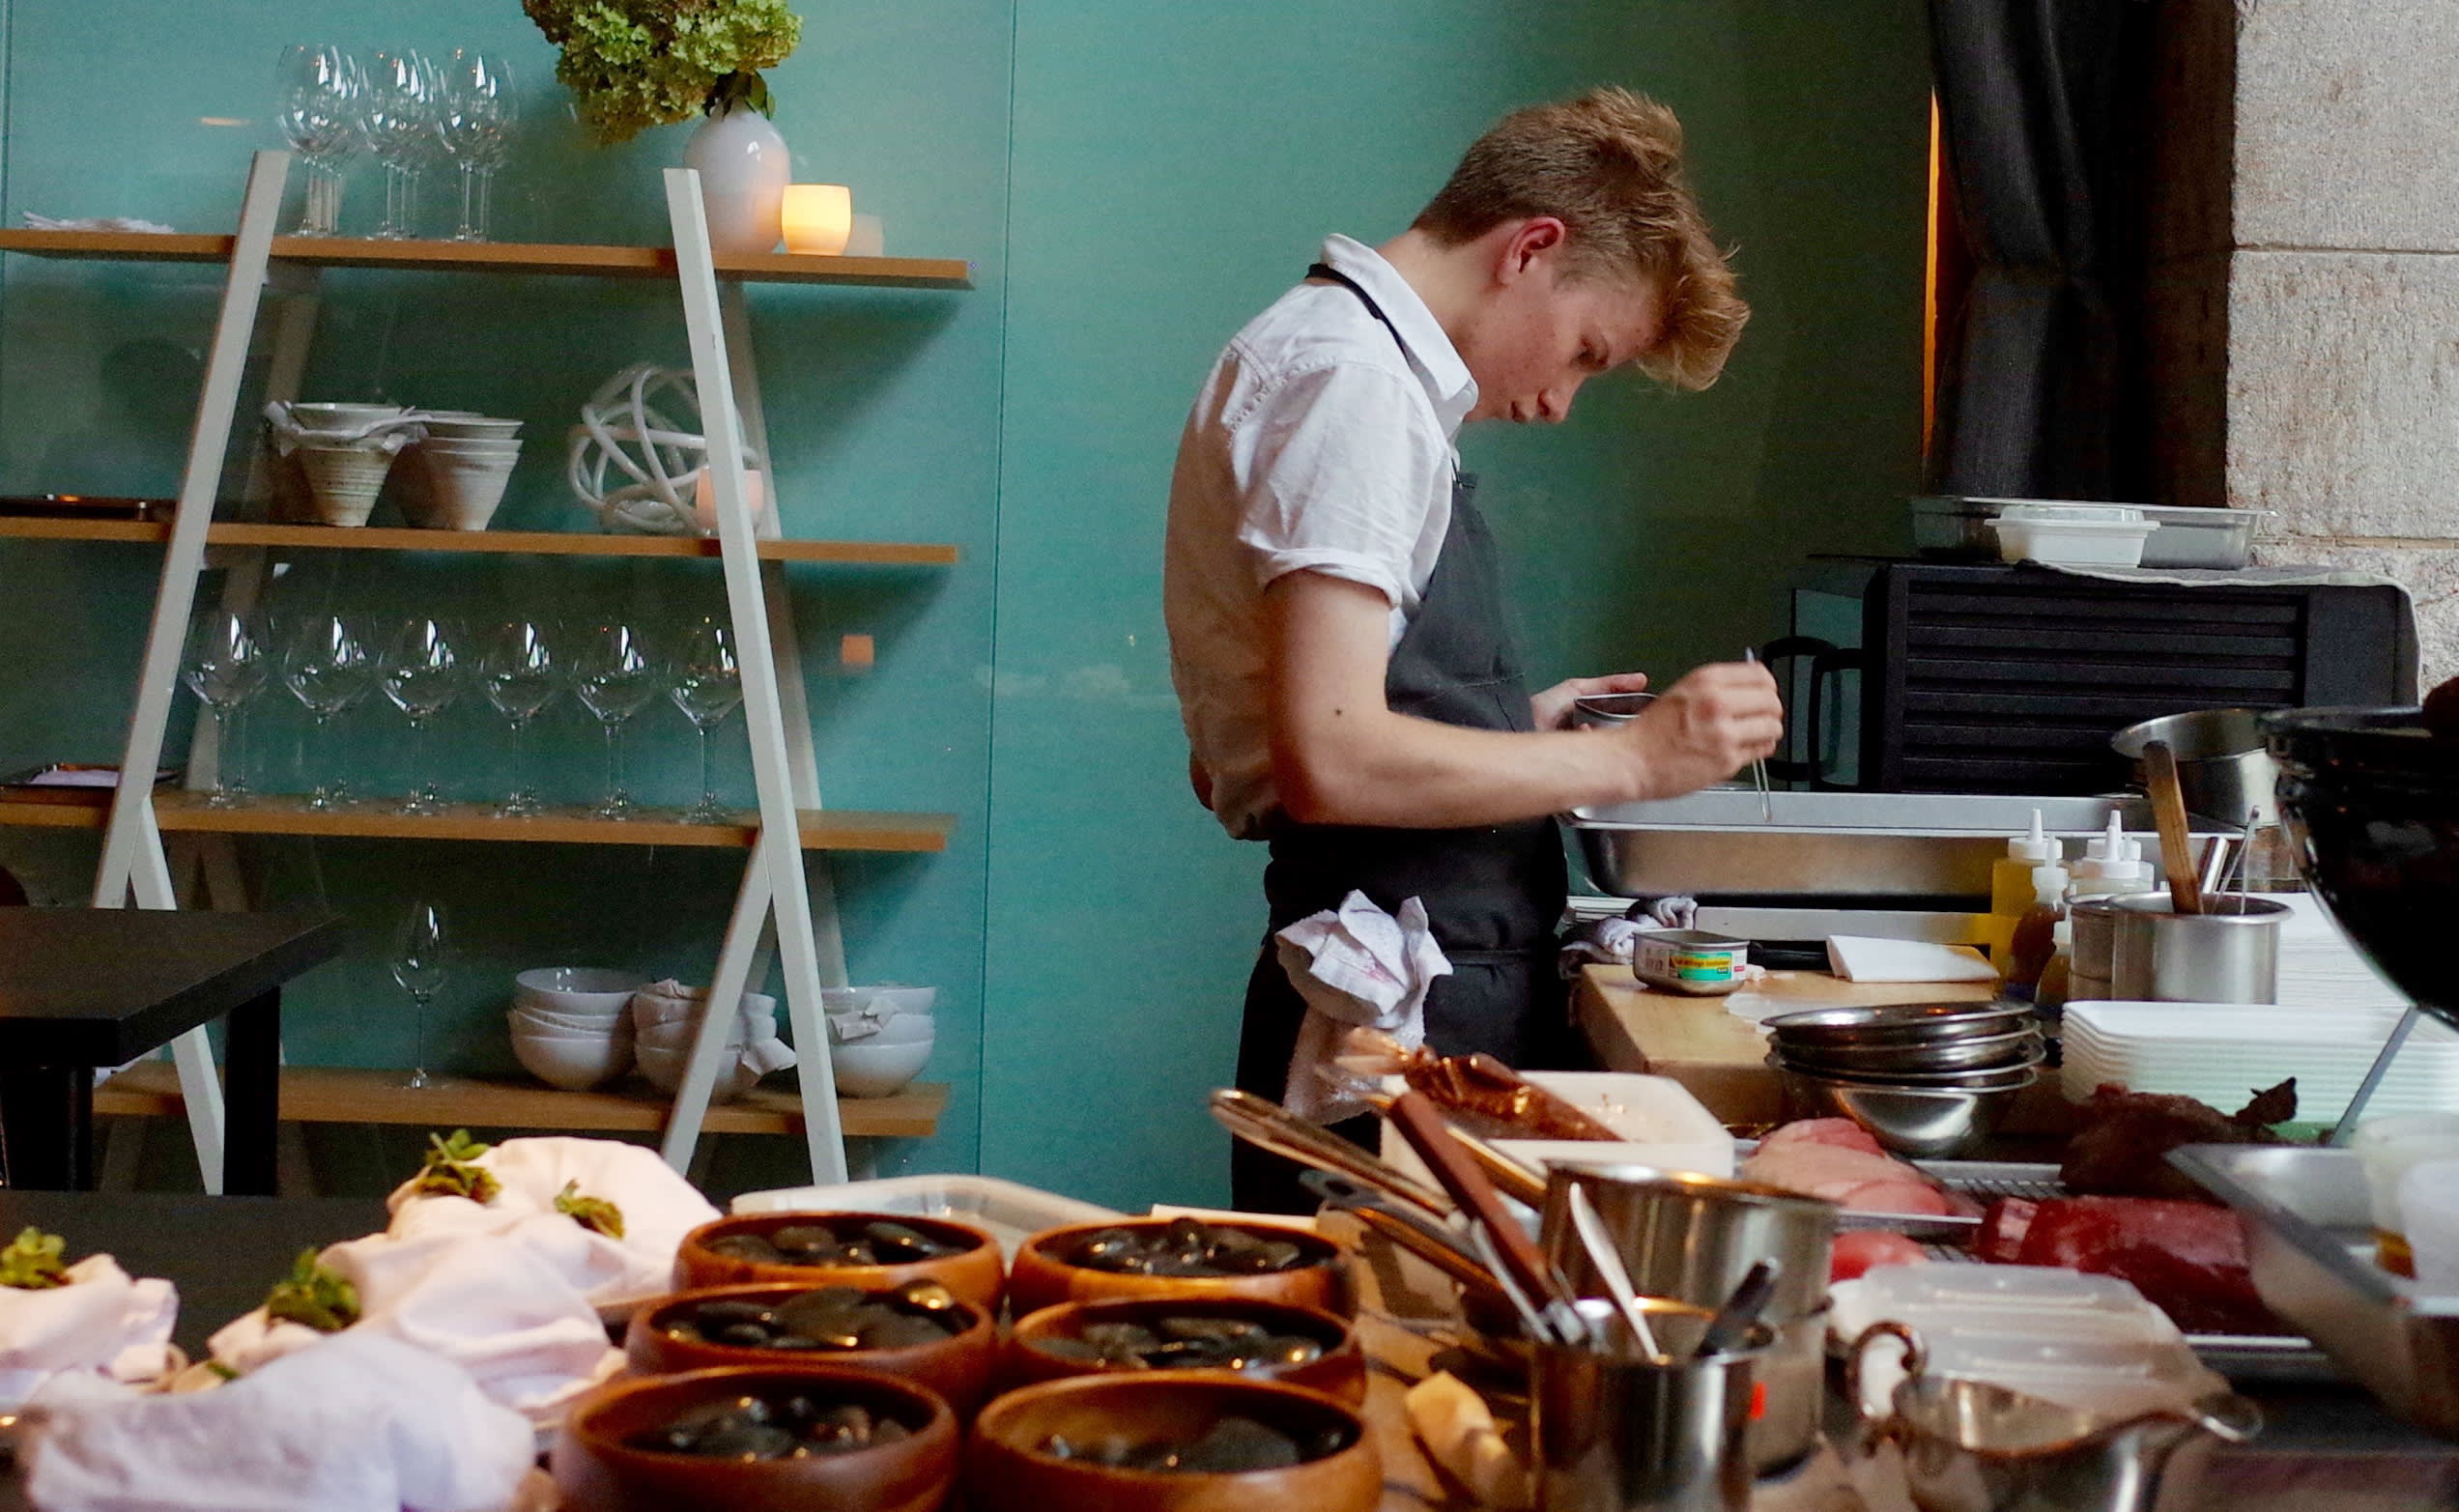 Meet the 17-year-old prodigy chef who makes $160 10-course meals